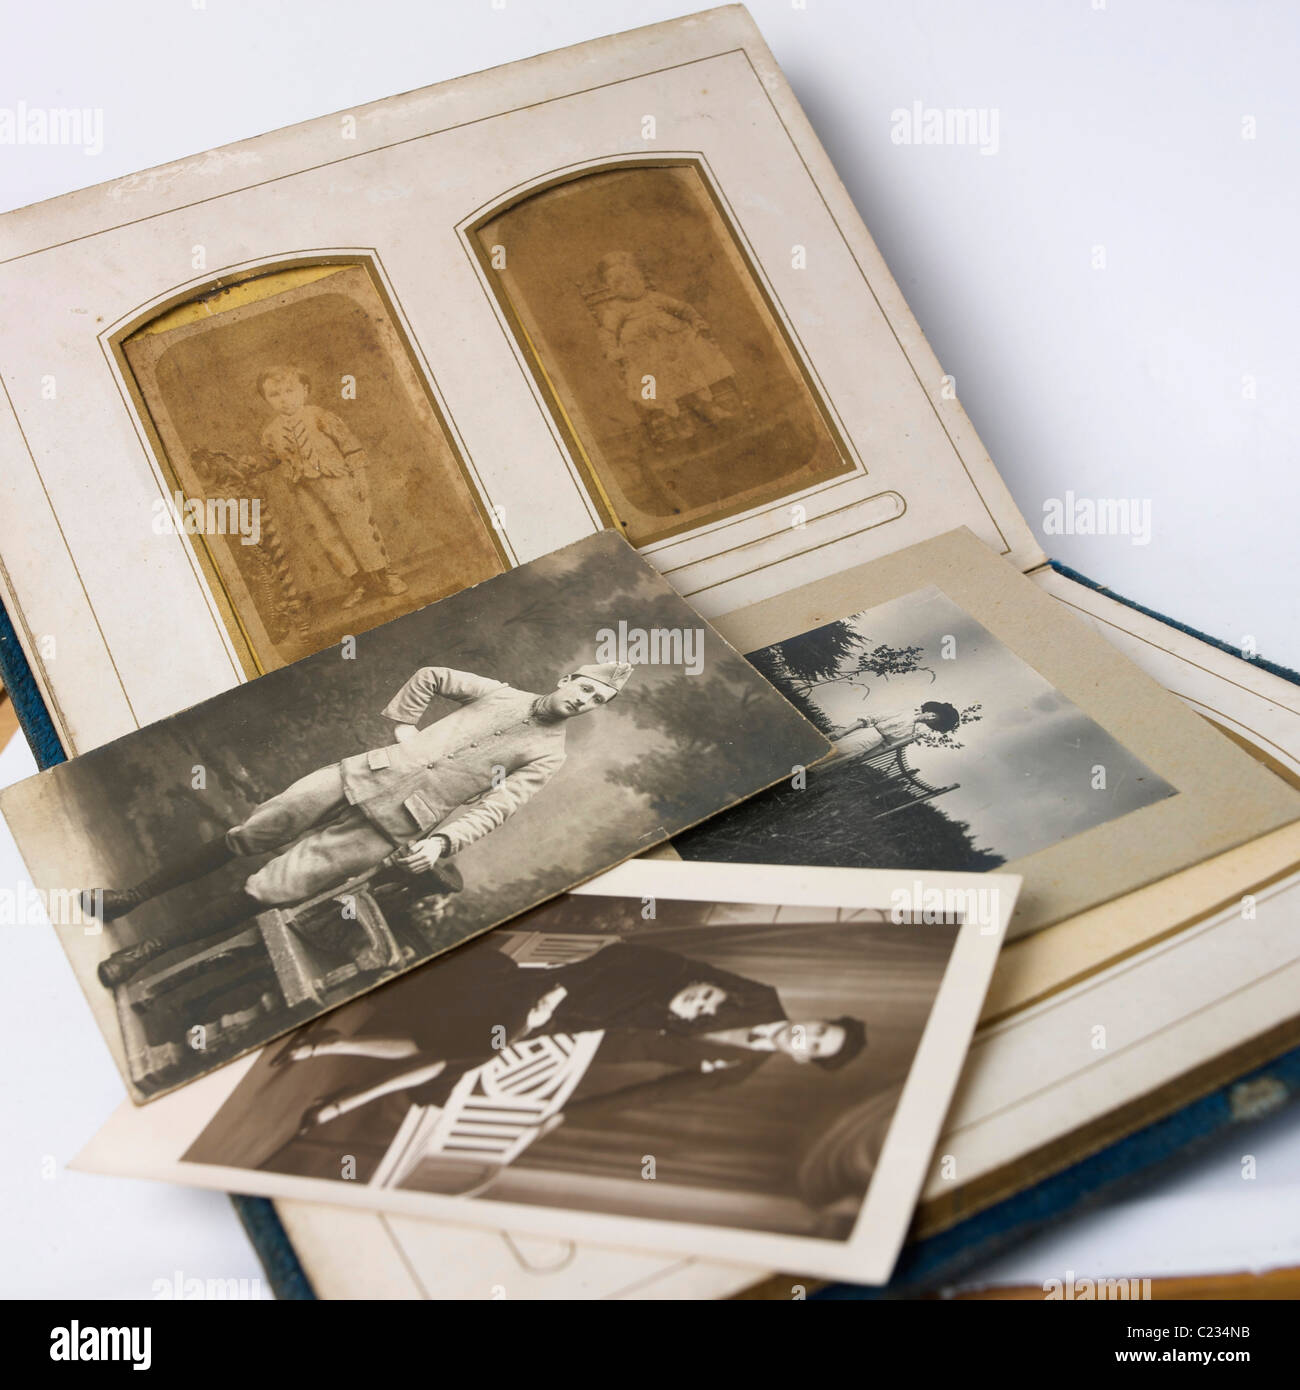 Old vintage photographs and album - Stock Image